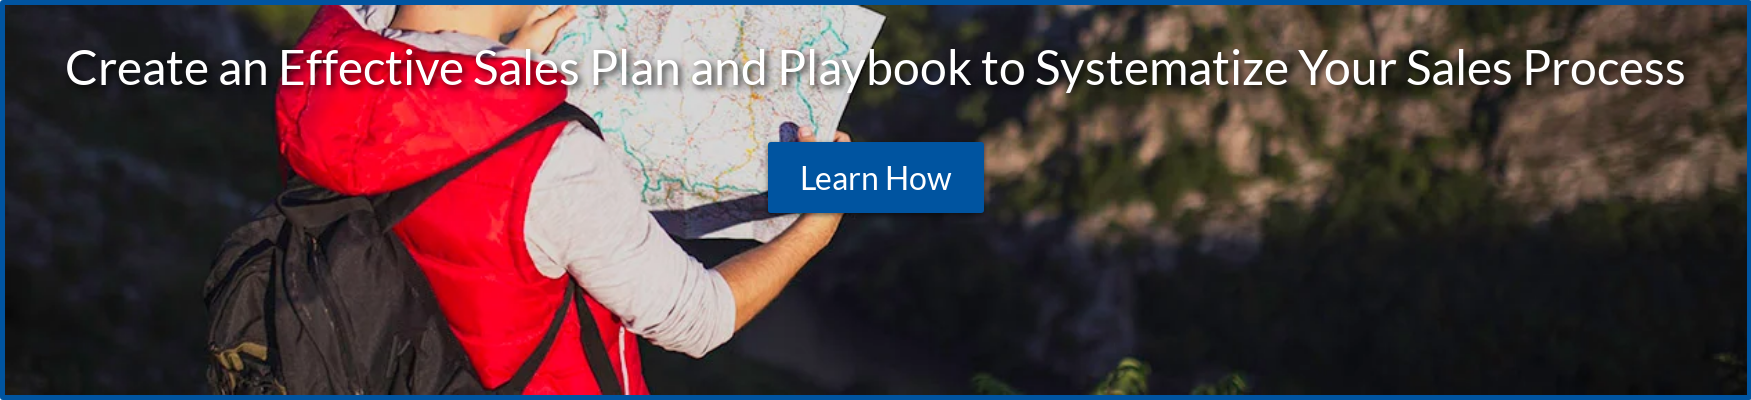 Create an Effective Sales Plan and Playbook to Systematize Your Sales Process   Learn How